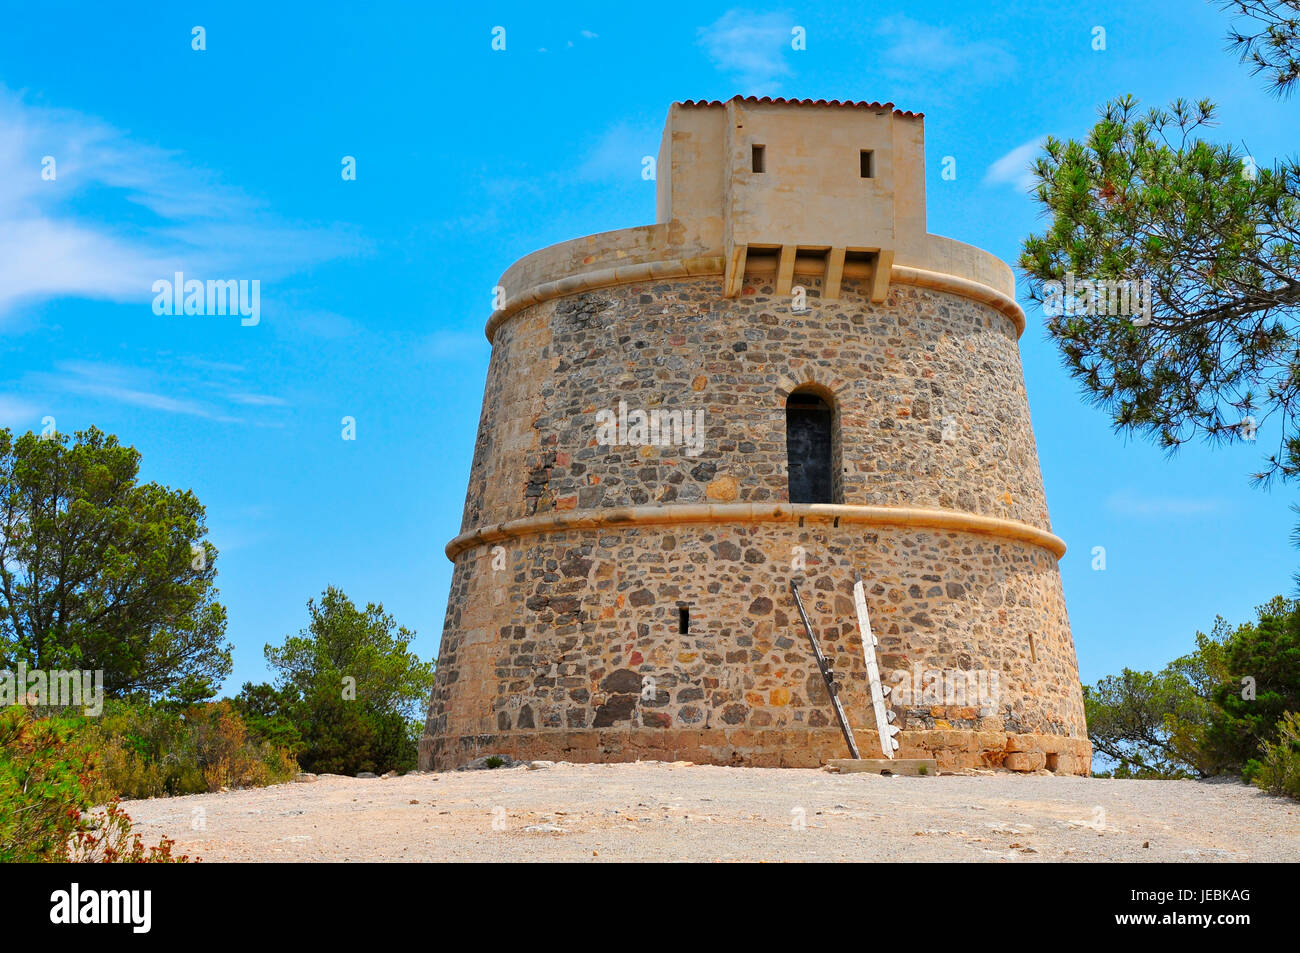 a view of the medieval tower Torre de Campanitx or Torre den Valls, in Ibiza, Spain - Stock Image